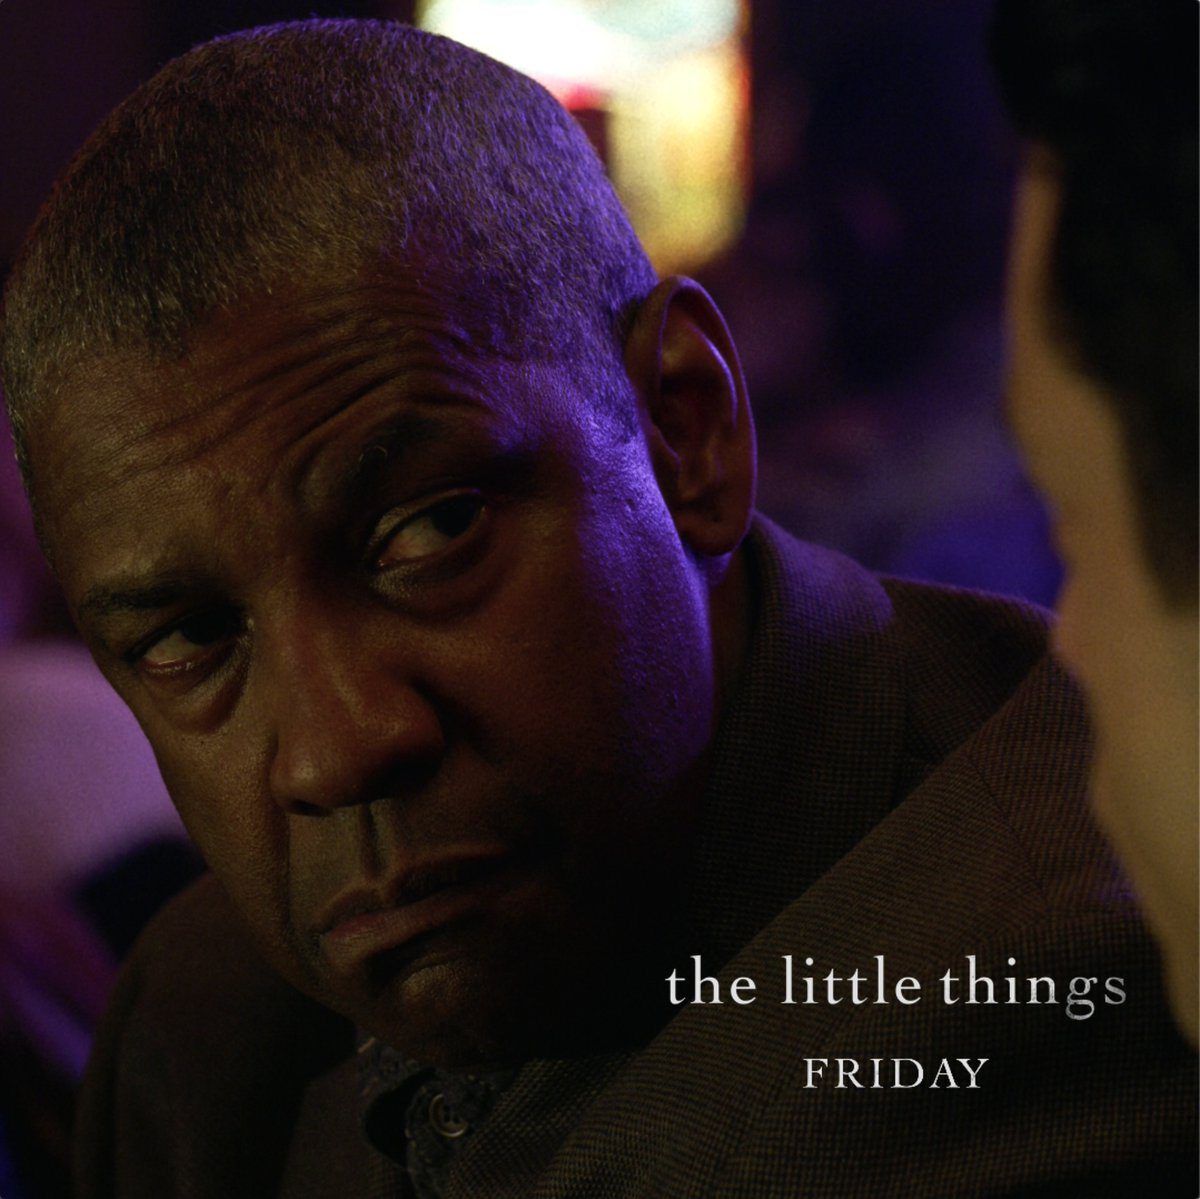 Academy Award® Winner Denzel Washington returns to the screen as a deputy embroiled in the search for a killer who is terrorizing the city. The Little Things – in theaters and streaming on @HBOMax this Friday. See it your way:  #TheLittleThingsMovie